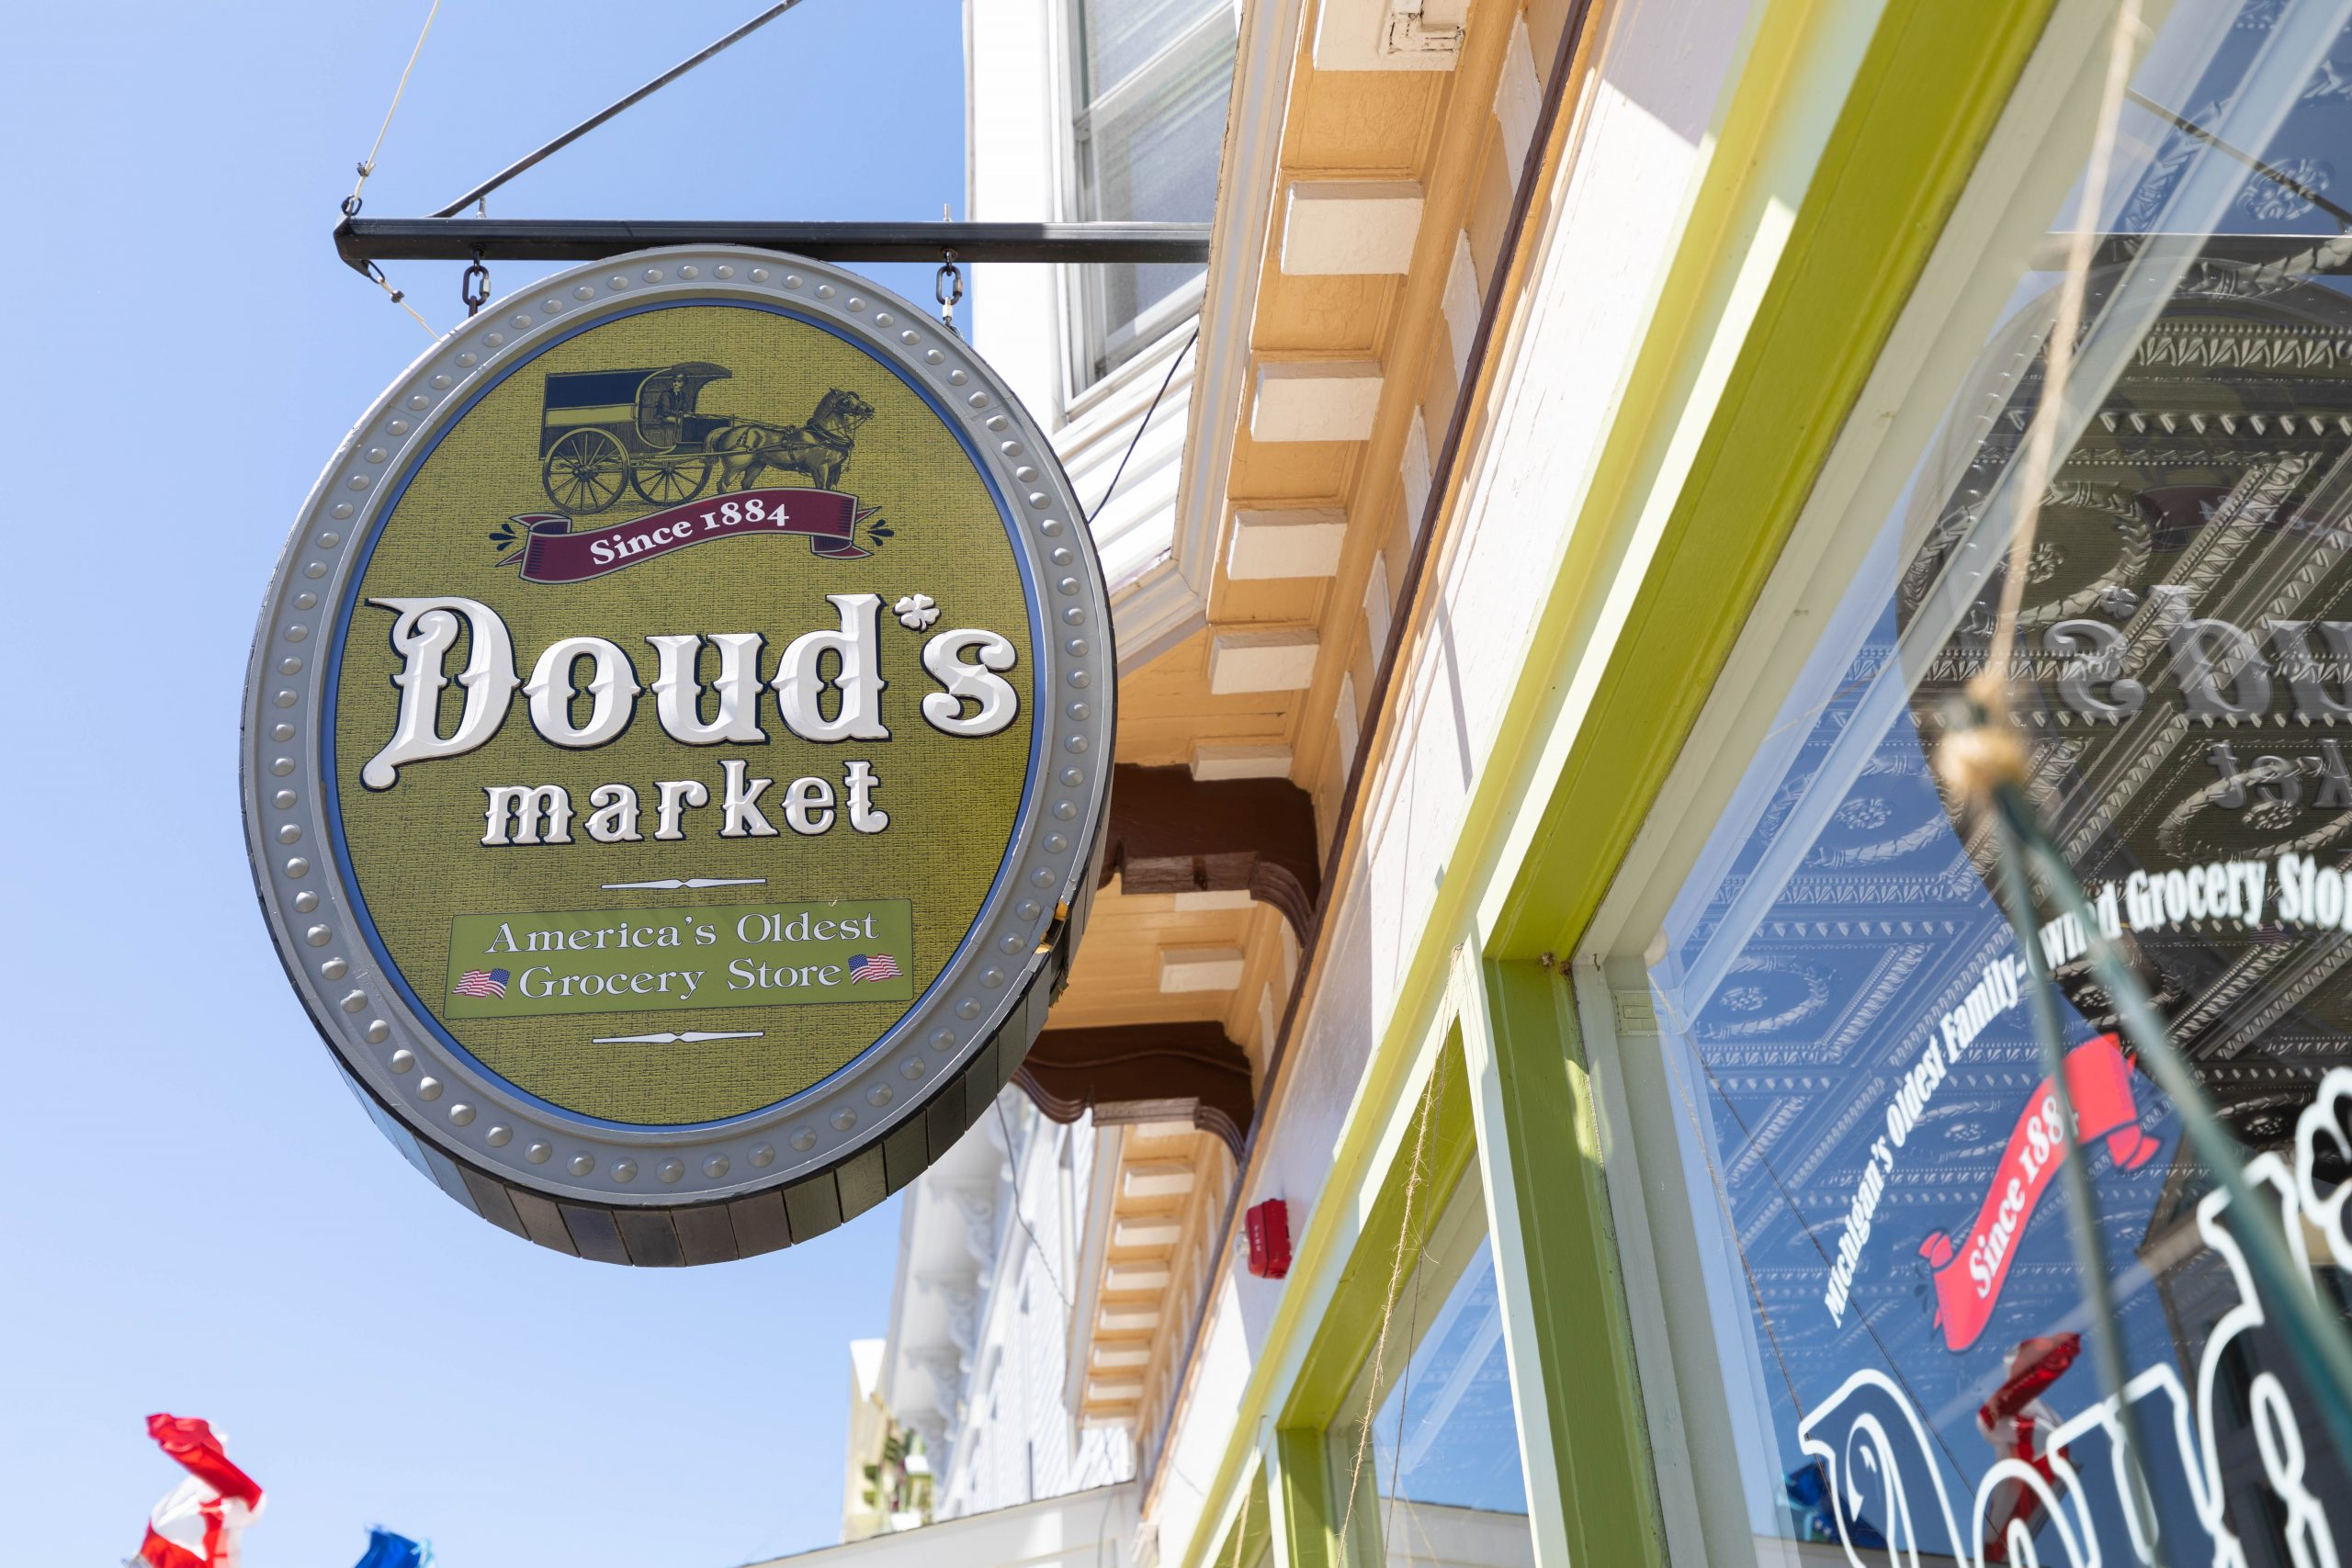 Doud's Market Mackinac Island The Ultimate Travel Guide Where to Eat, What to Do, Where to Stay by Annie Fairfax